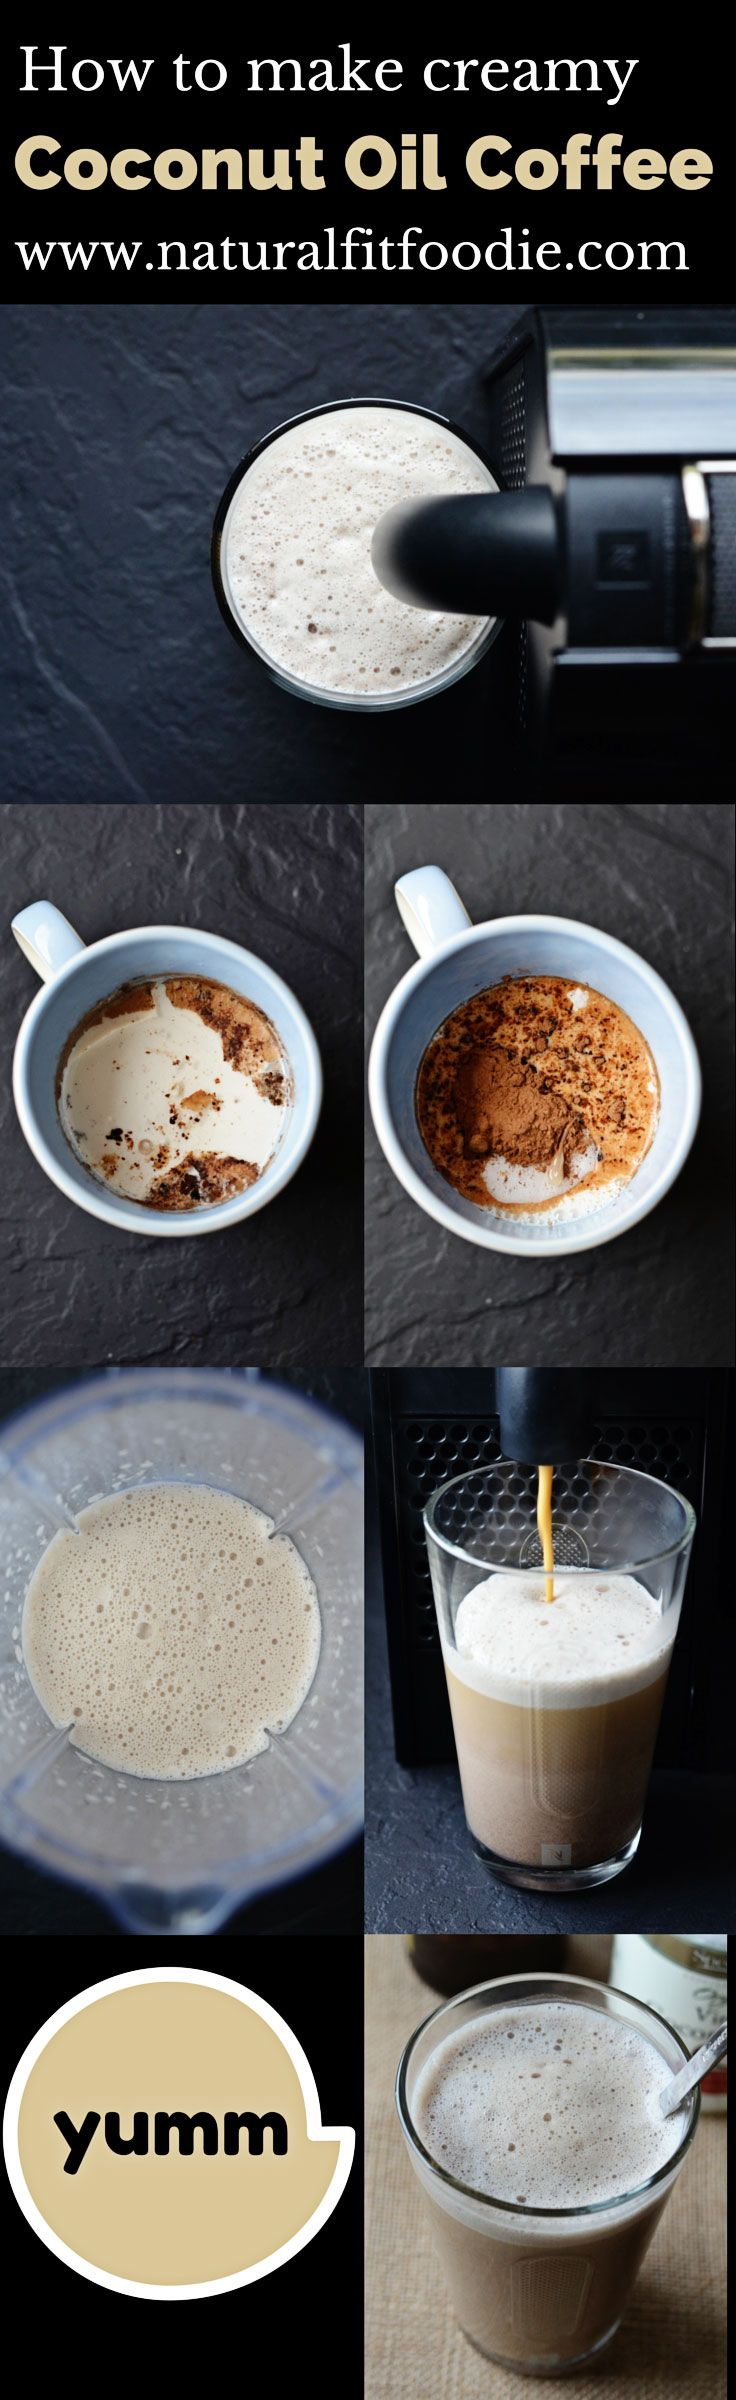 Coconut oil coffee adding coconut oil to your coffee is